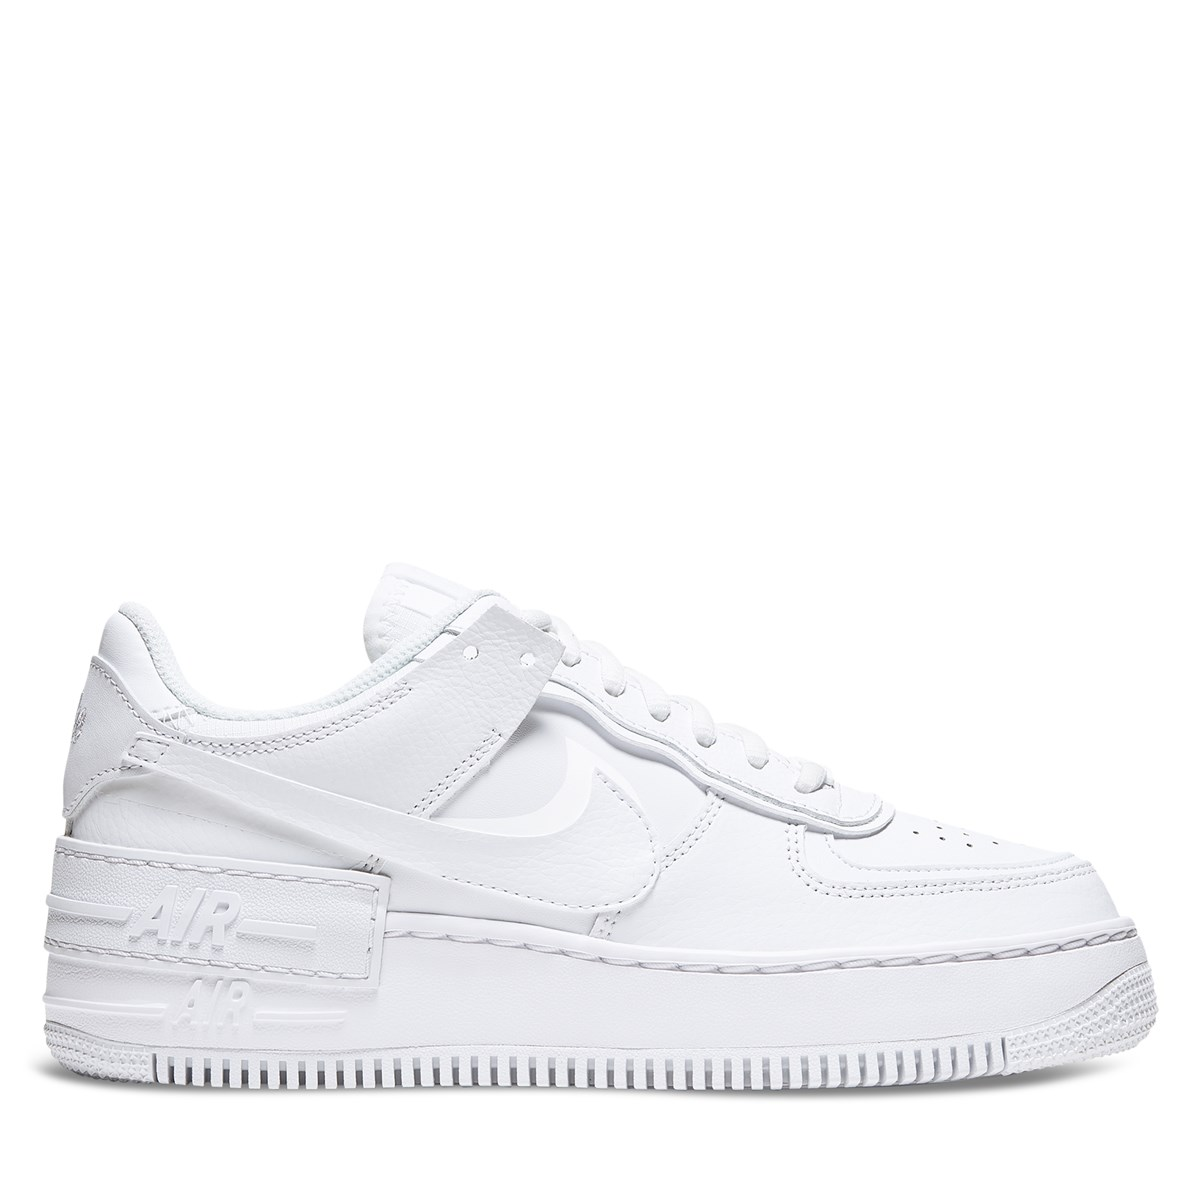 Women's Air Force 1 Shadow Sneakers in White